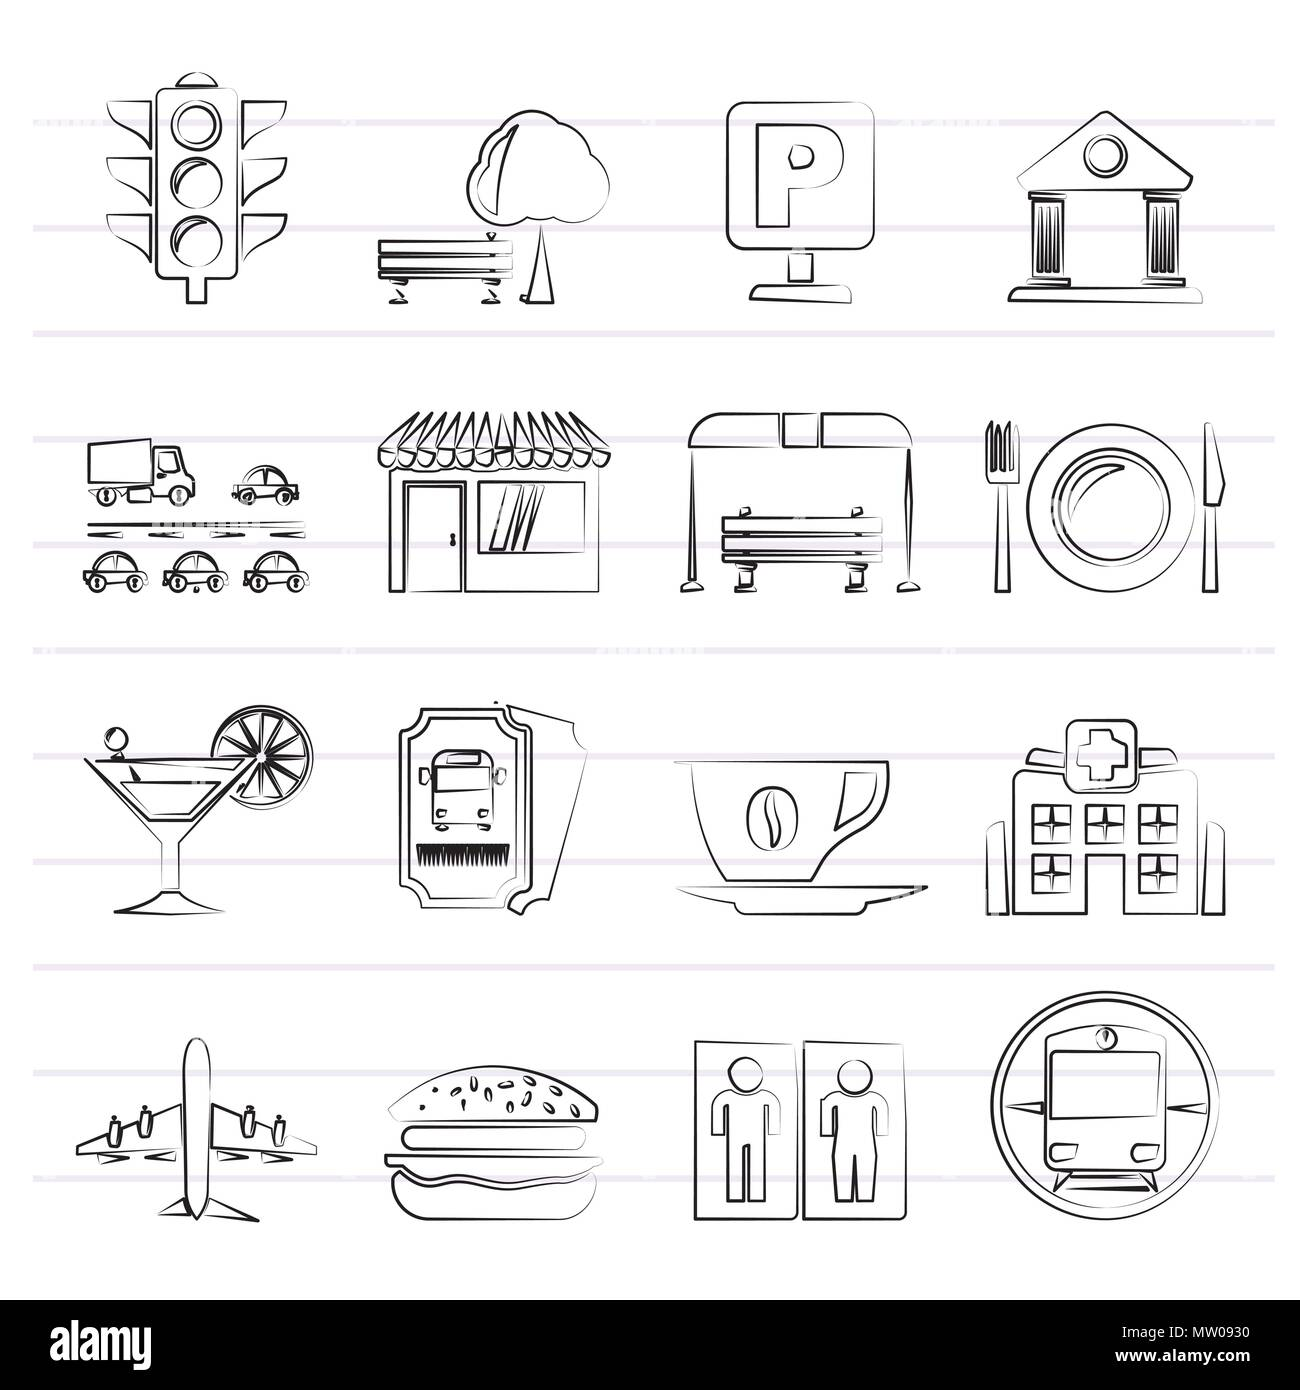 Urban and city elements icons - vector icon set Stock Vector